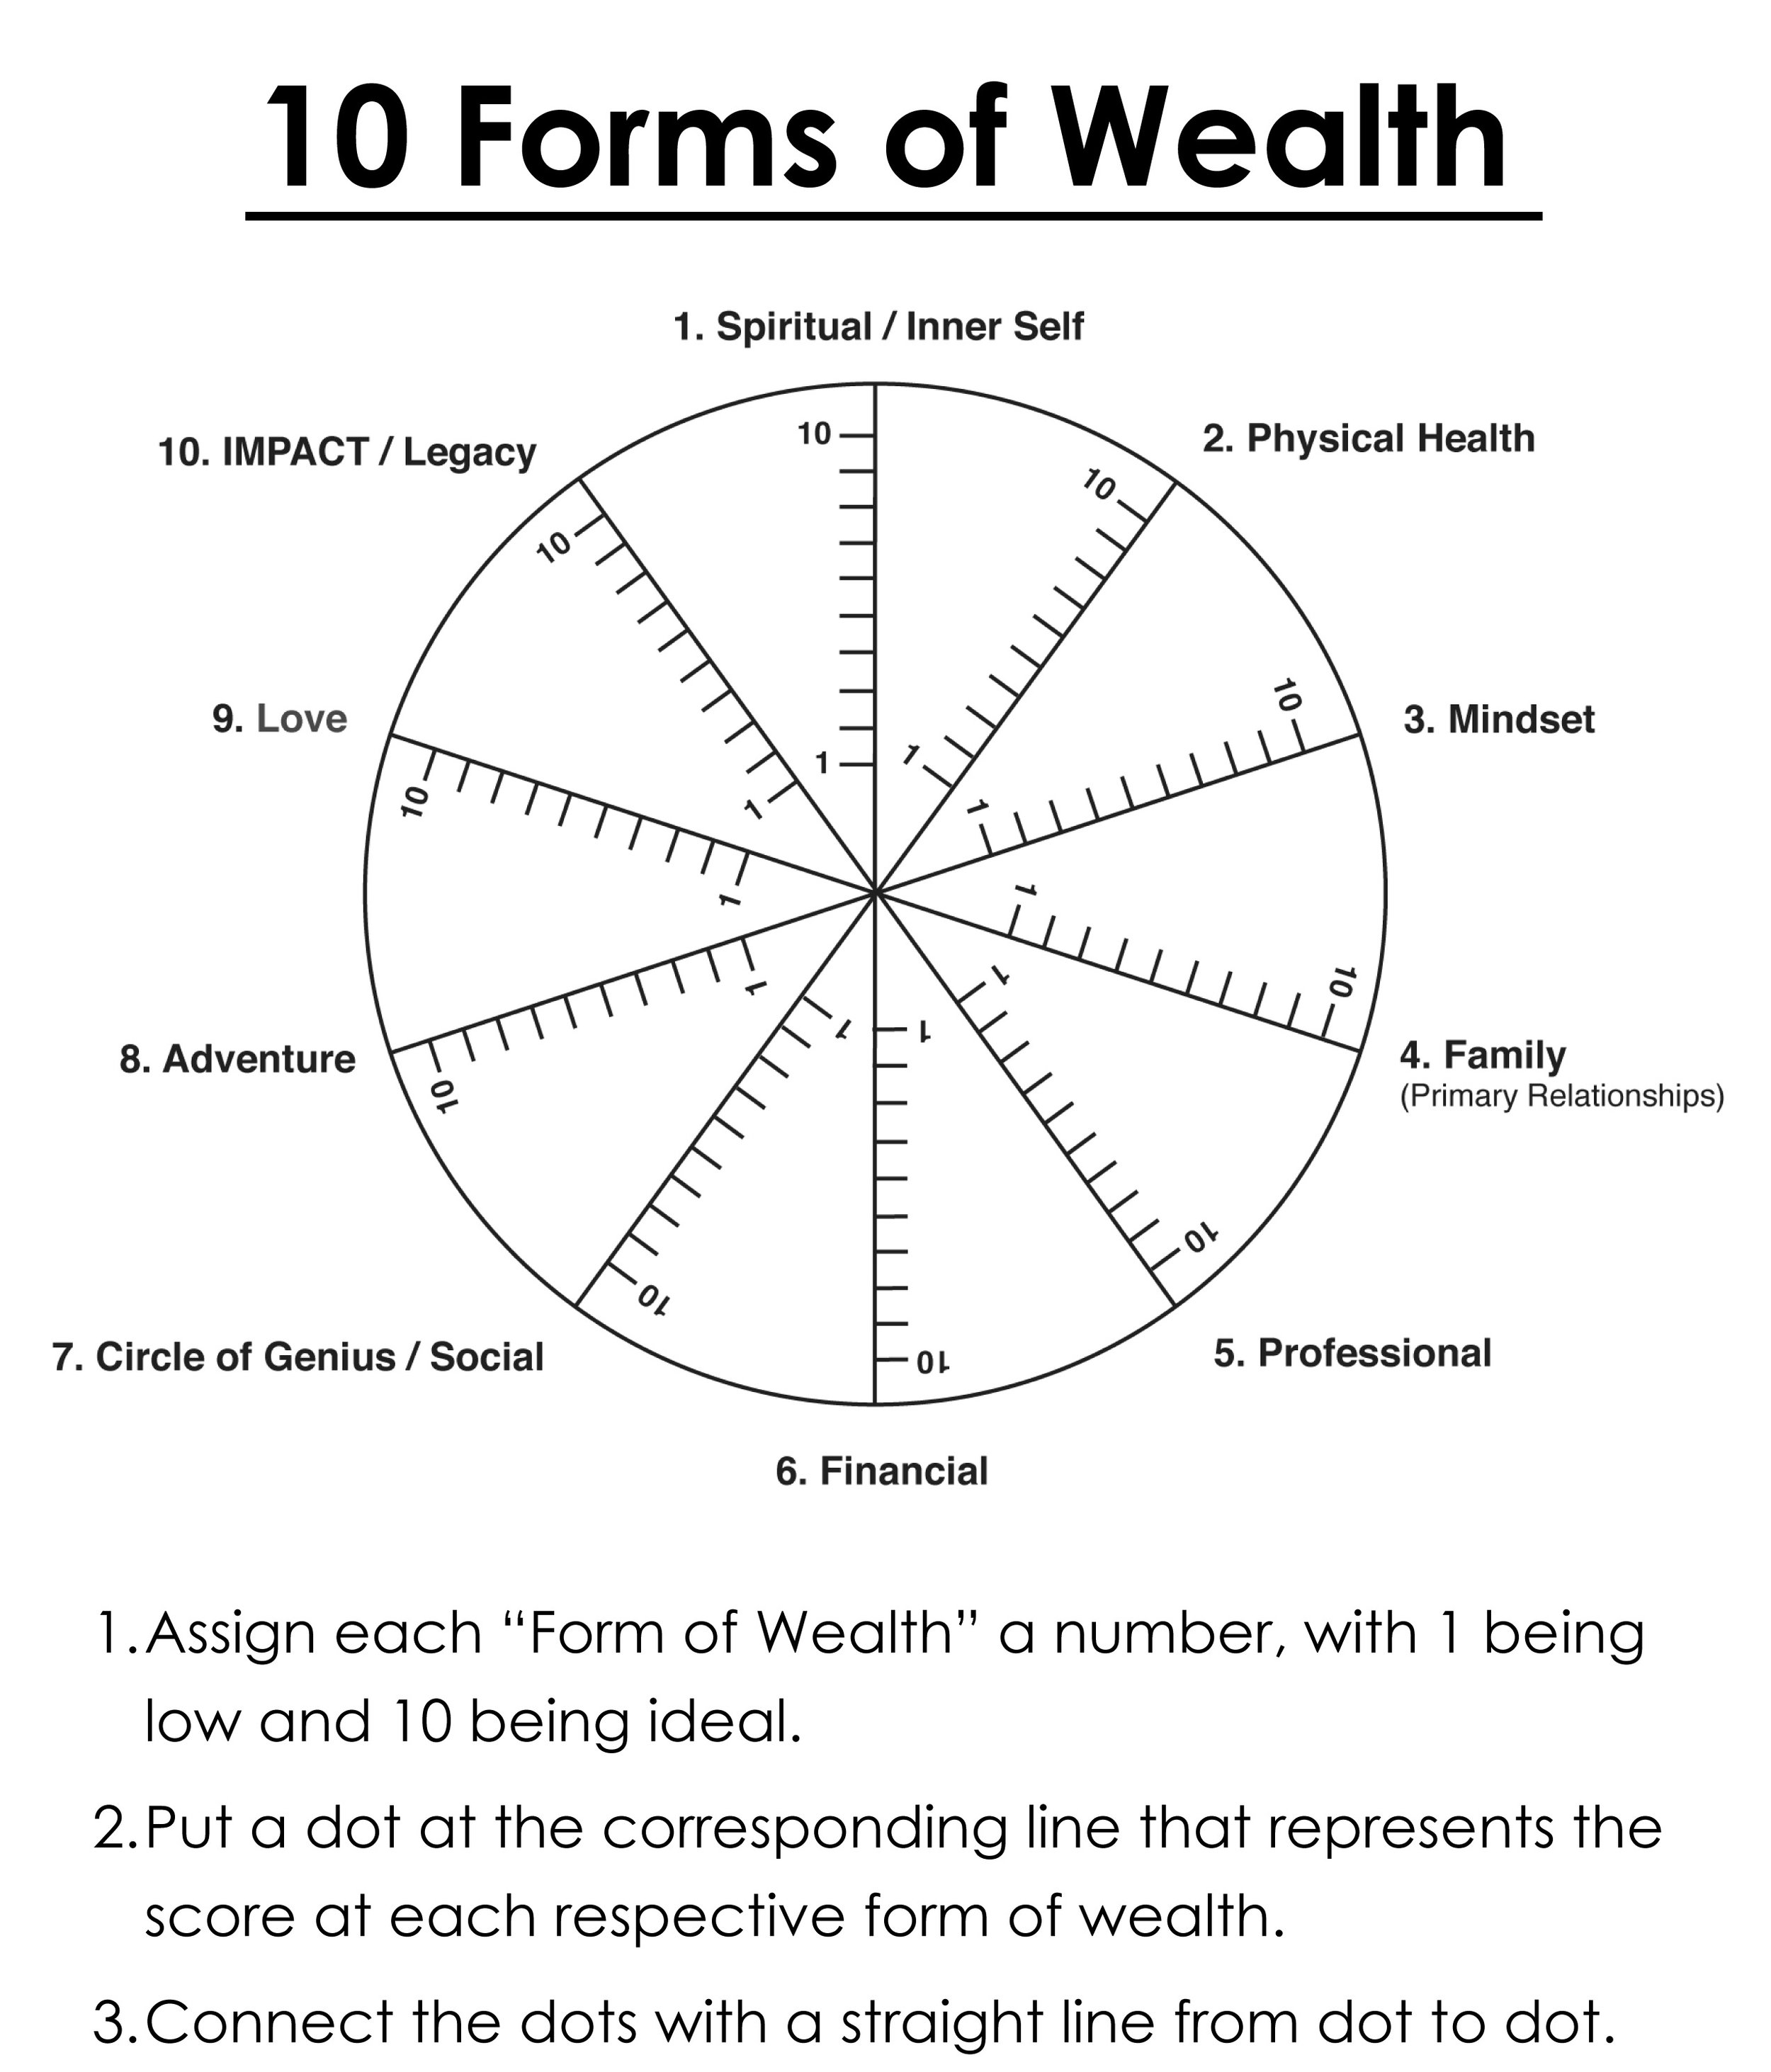 10 Forms of Wealth.jpg